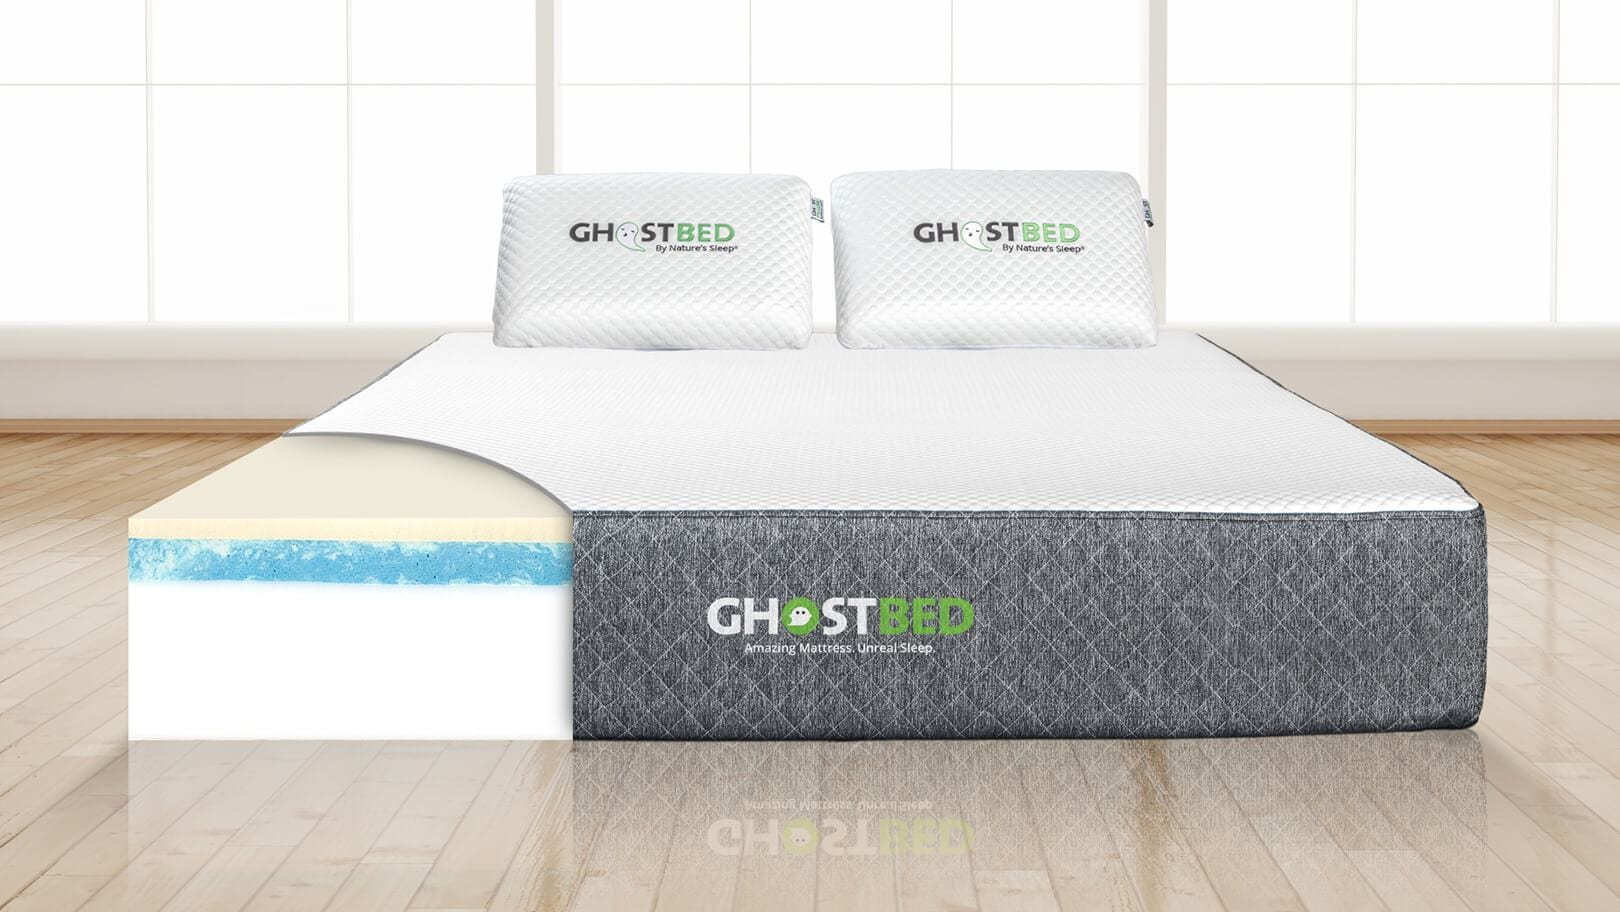 Nolah vs Ghostbed - Which is for you?